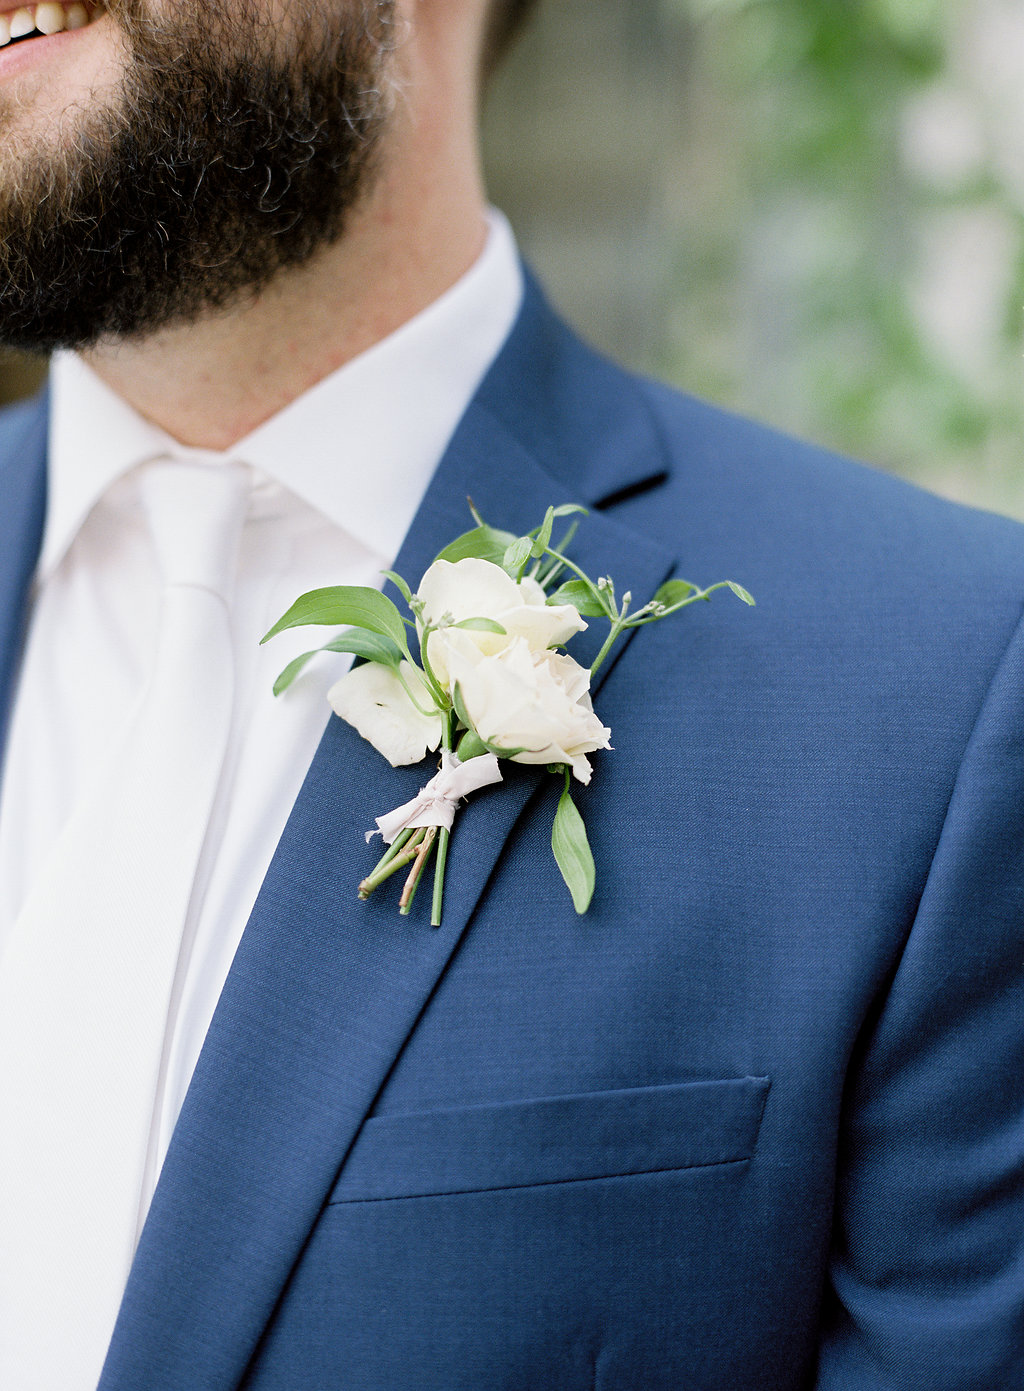 groom-simple-white-boutonniere-strongwater.jpg